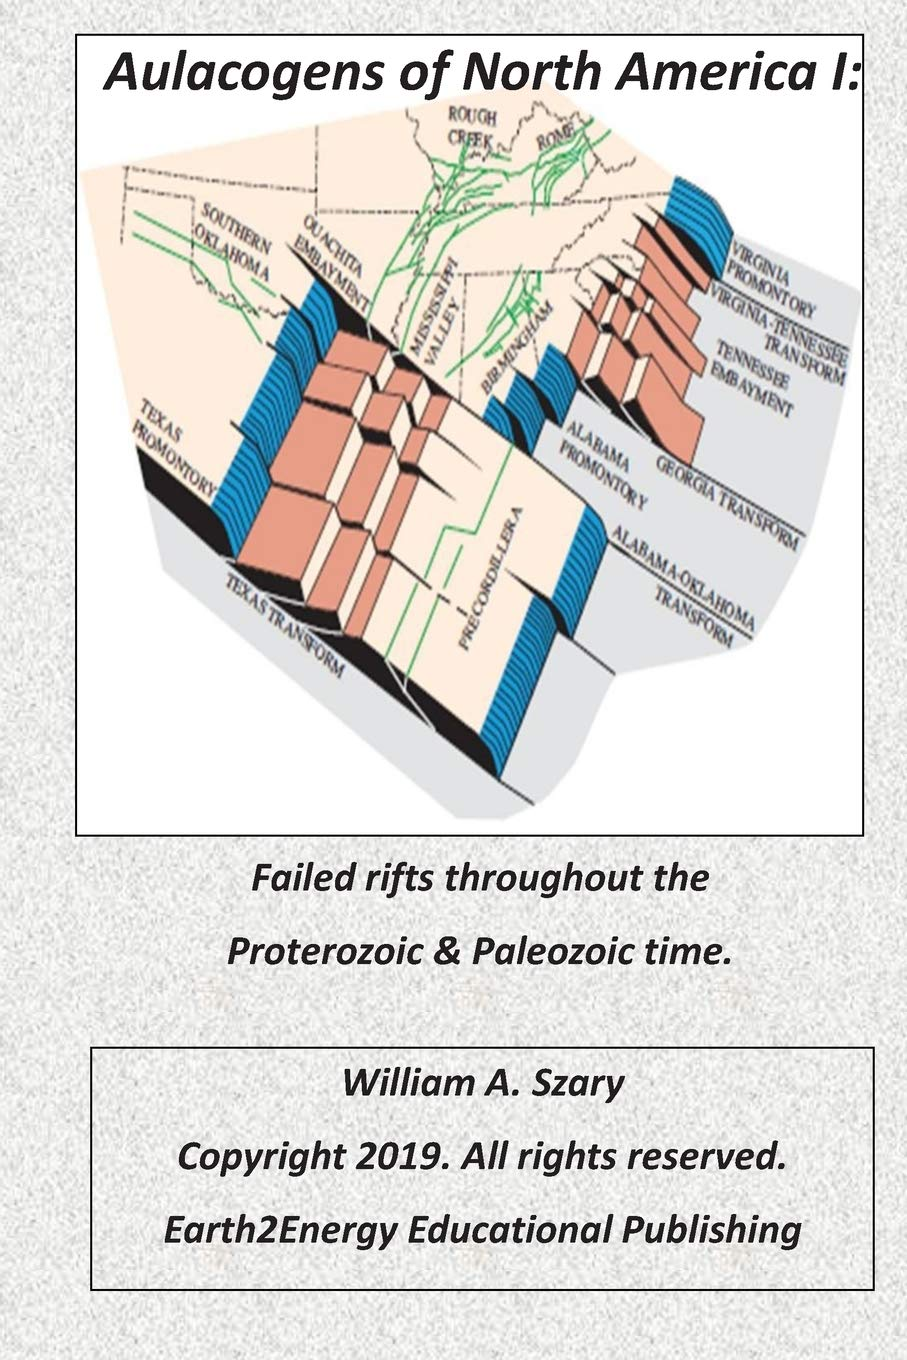 Aulacogens Of North America I Failed Rifts Throught Proterozoic And Paleozoic Time Szary Mr William A 9781706966029 Amazon Com Books